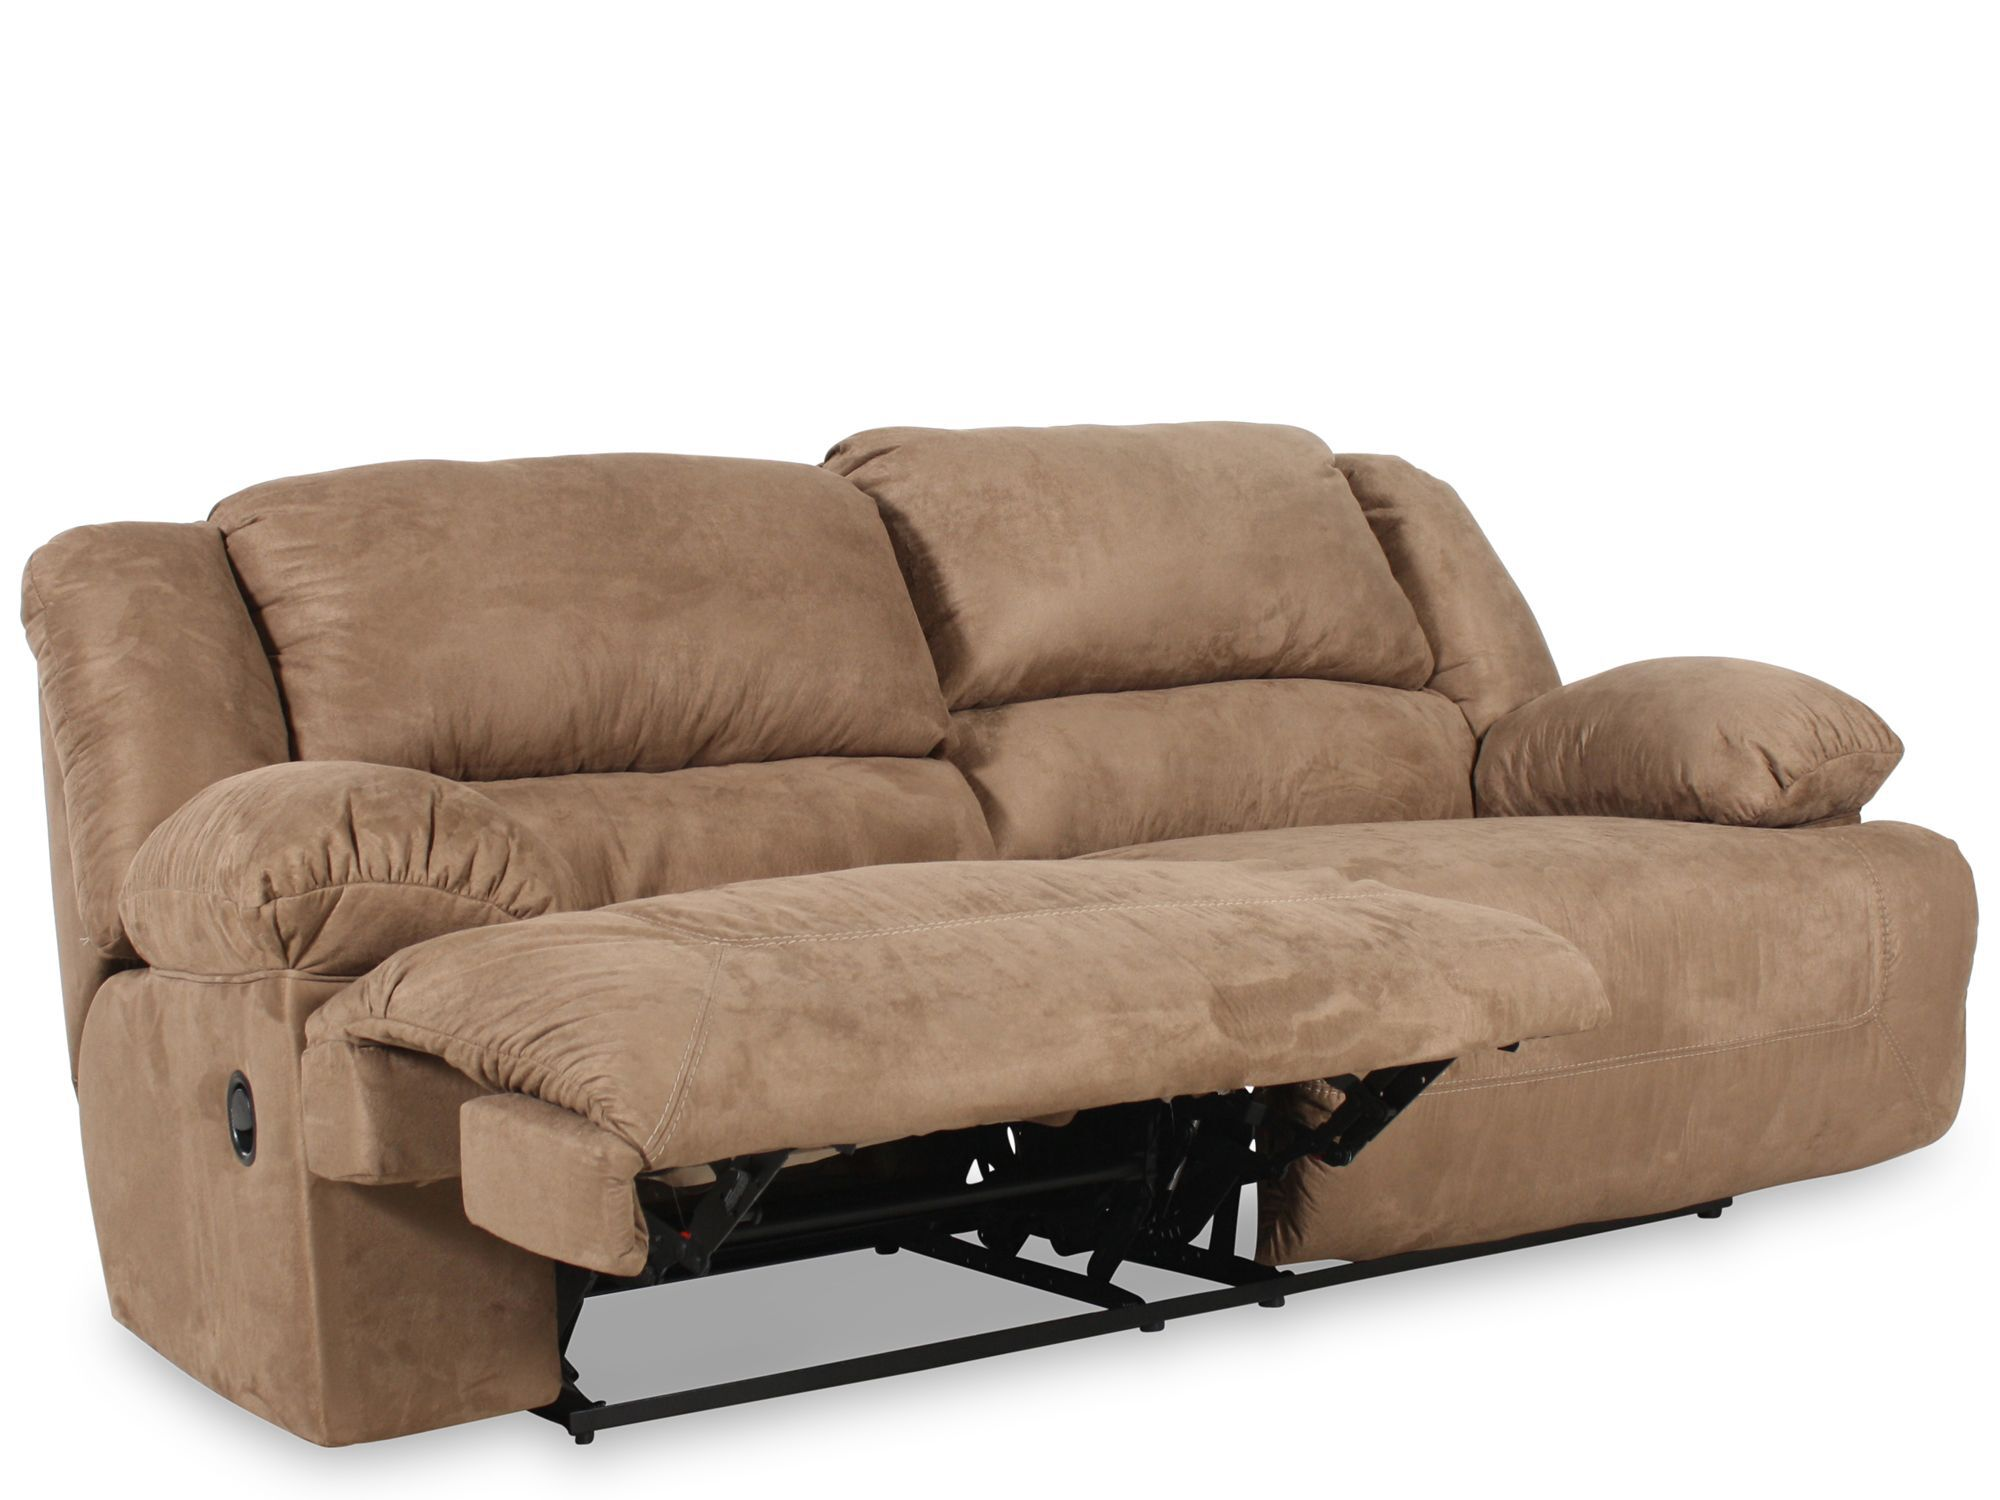 reclining two seat sofa convertible into bed ashley hogan mocha mathis